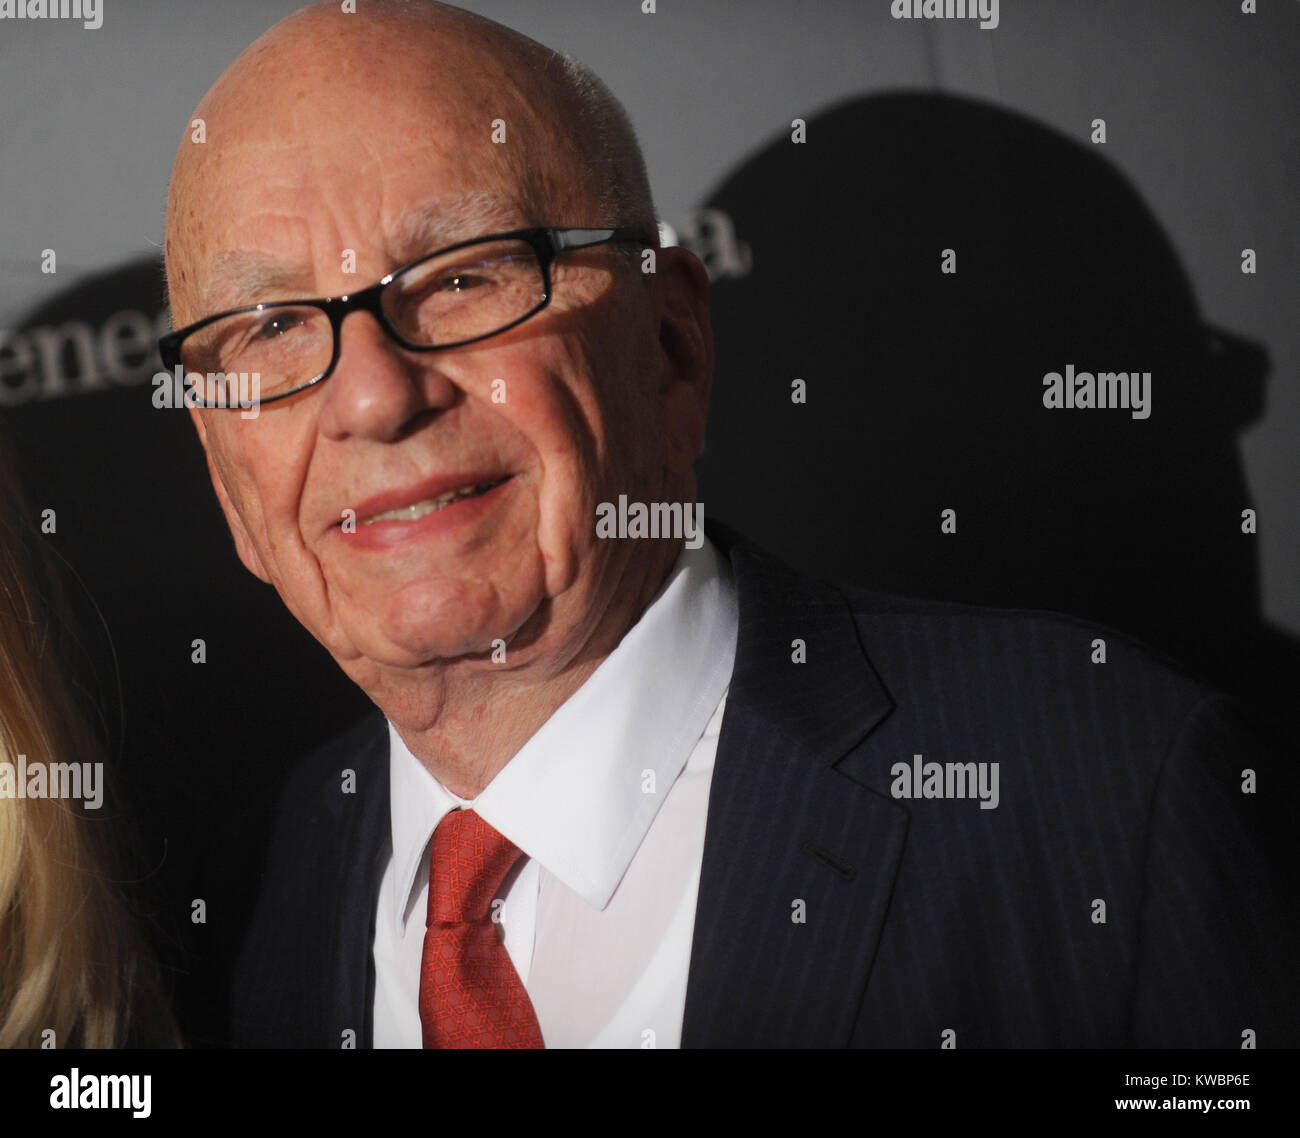 NEW YORK, NY - NOVEMBER 05: Rupert Murdoch  attends WSJ. Magazine's 'Innovator Of The Year' Awards at - Stock Image